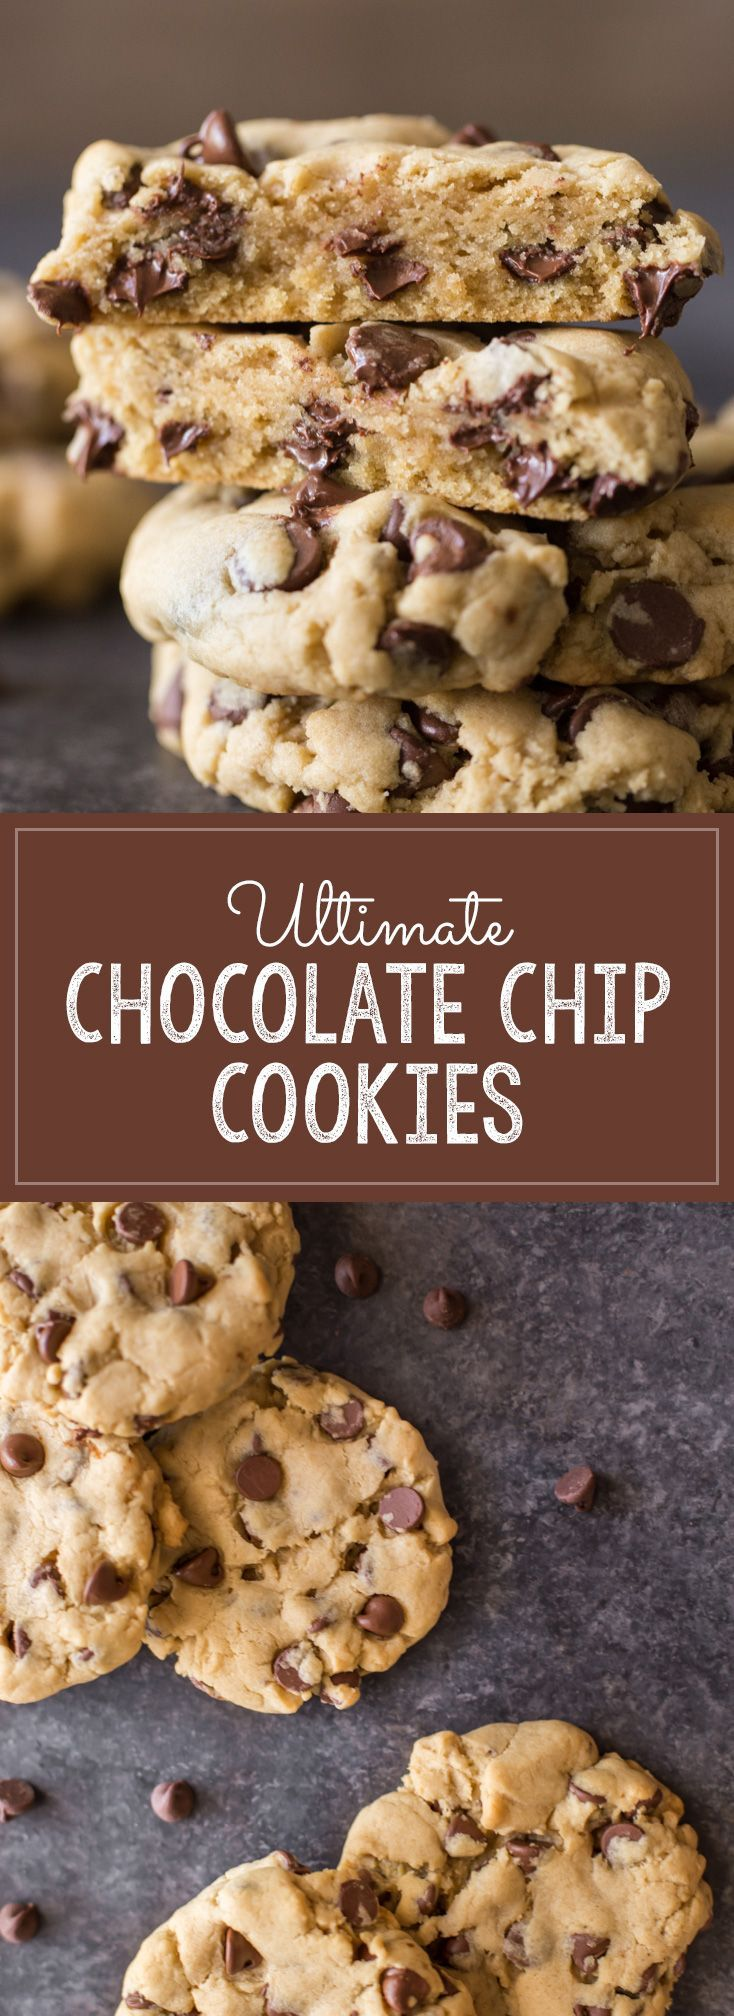 ... Chip Cookies - How to make thick, soft, bakery style chocolate chip